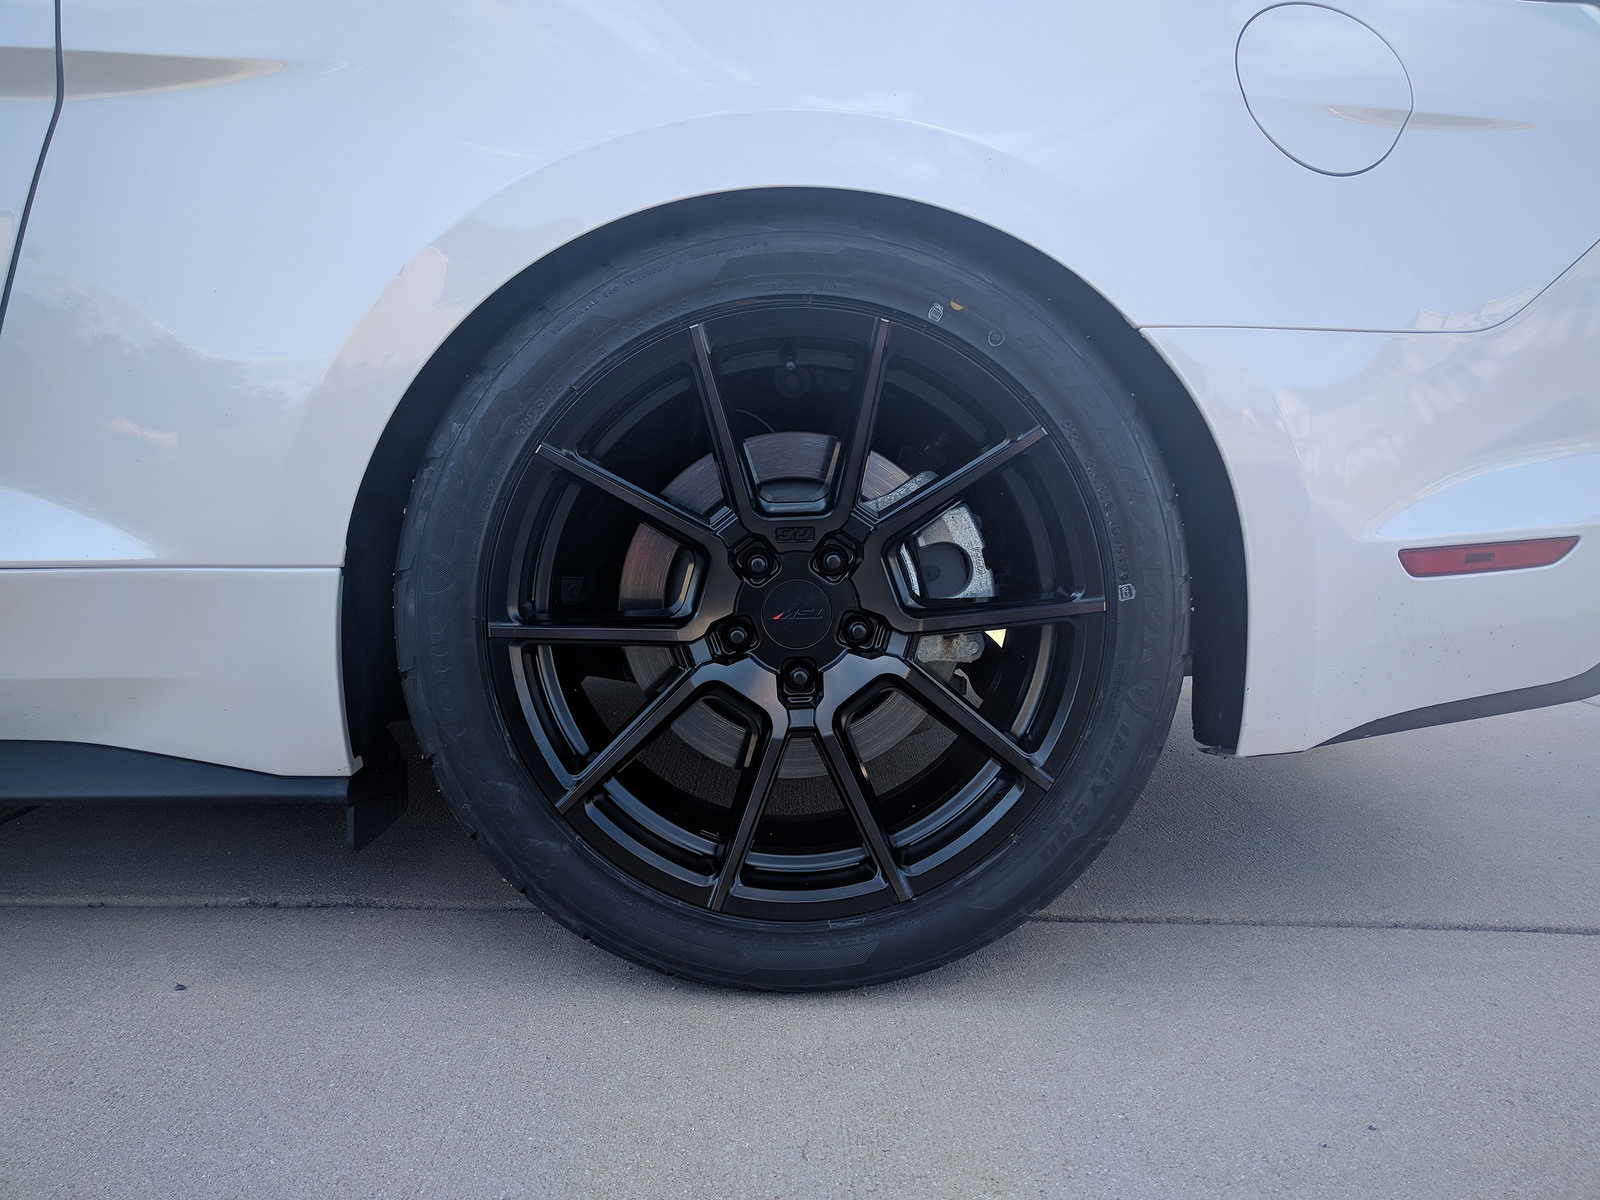 oxford-white-ford-mustang-gt-tsw-chrono-black-rotory-forged-wheels.jpg